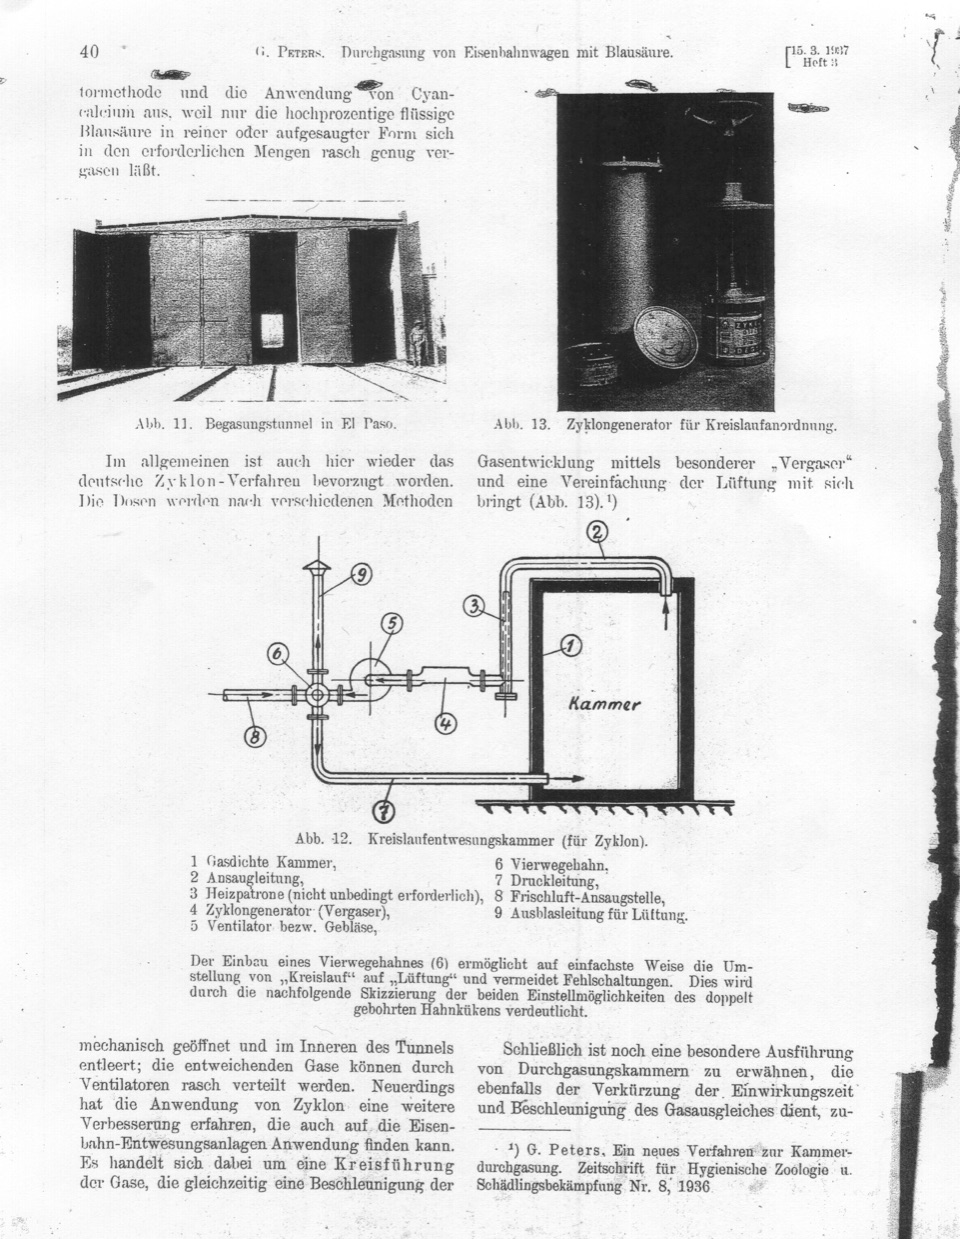 Nazi scientist Gerhard Peters was inspired to use Zyklon B in the Holocaust after learning of the chemical's use as a fumigation agent at the border in El Paso. Peters wrote about Zyklon B and included two photographs of El Paso delousing chambers in this 1937 article in a German pest science journal.